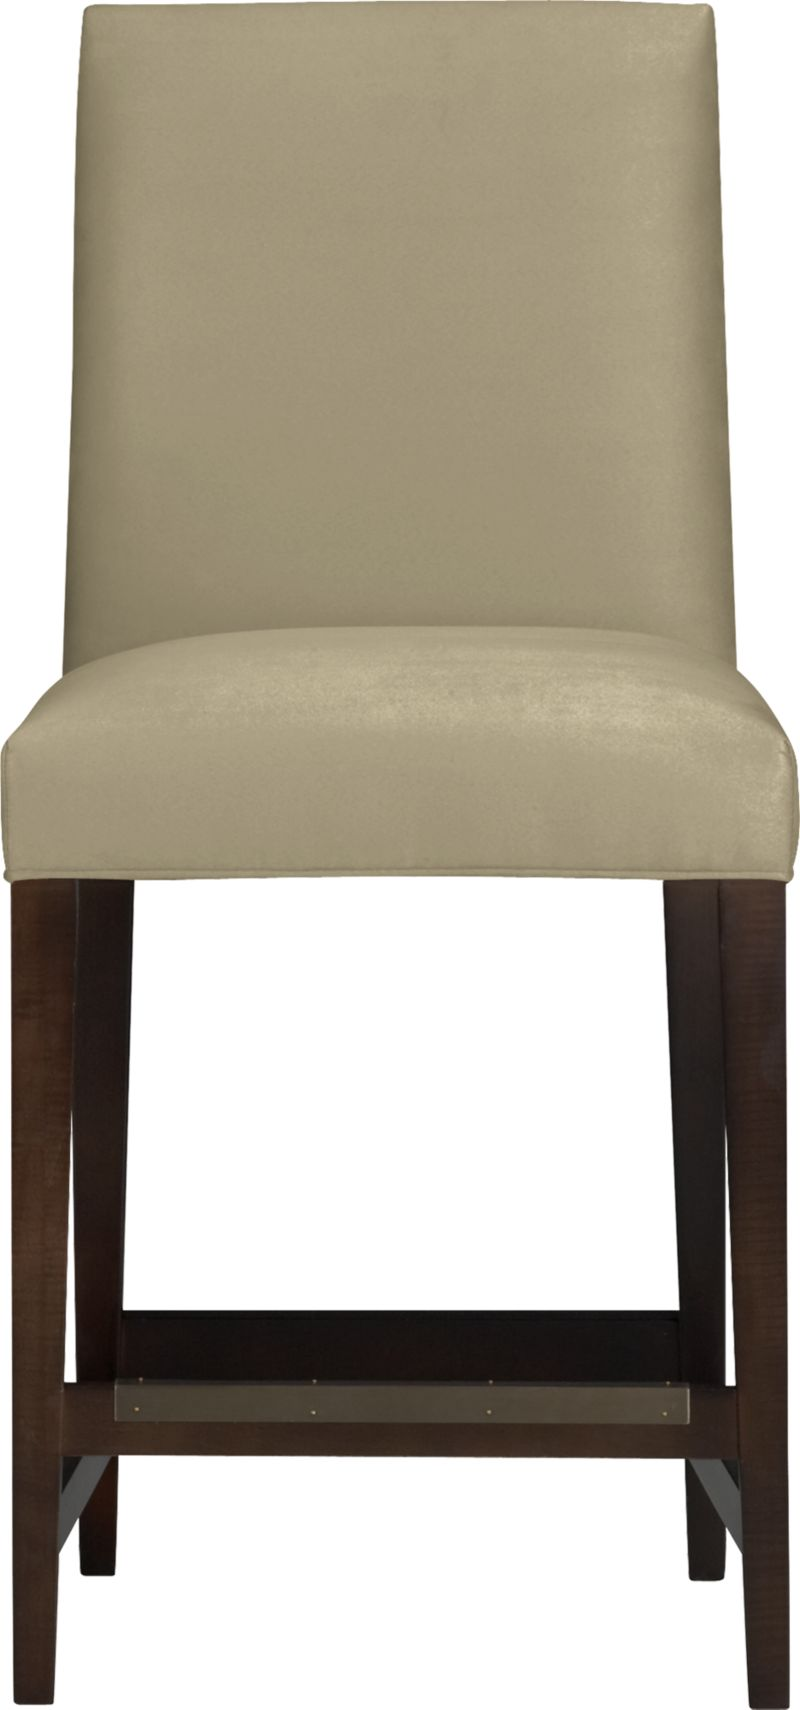 "Our Miles barstool is a fresh new classic with polished proportions and casual formality. Padded seat and gently curved back are upholstered in an easy-care textural poly blend in neutral sand. Slim hickory-colored hardwood legs taper gracefully to the floor.<br /><br />After you place your order, we will send a fabric swatch via next day air for your final approval. We will contact you to verify both your receipt and approval of the fabric swatch before finalizing your order.<br /><br /><NEWTAG/><ul><li>Eco-friendly construction</li><li>Certified sustainable solid engineered hardwood frame</li><li>Soy- or plant-based polyfiber cushions</li><li>Solid maple legs with a hickory finish</li><li>Poly-cotton blend fabric</li><li>24""H seat sized for counters</li><li>Made in North Carolina, USA</li></ul>"